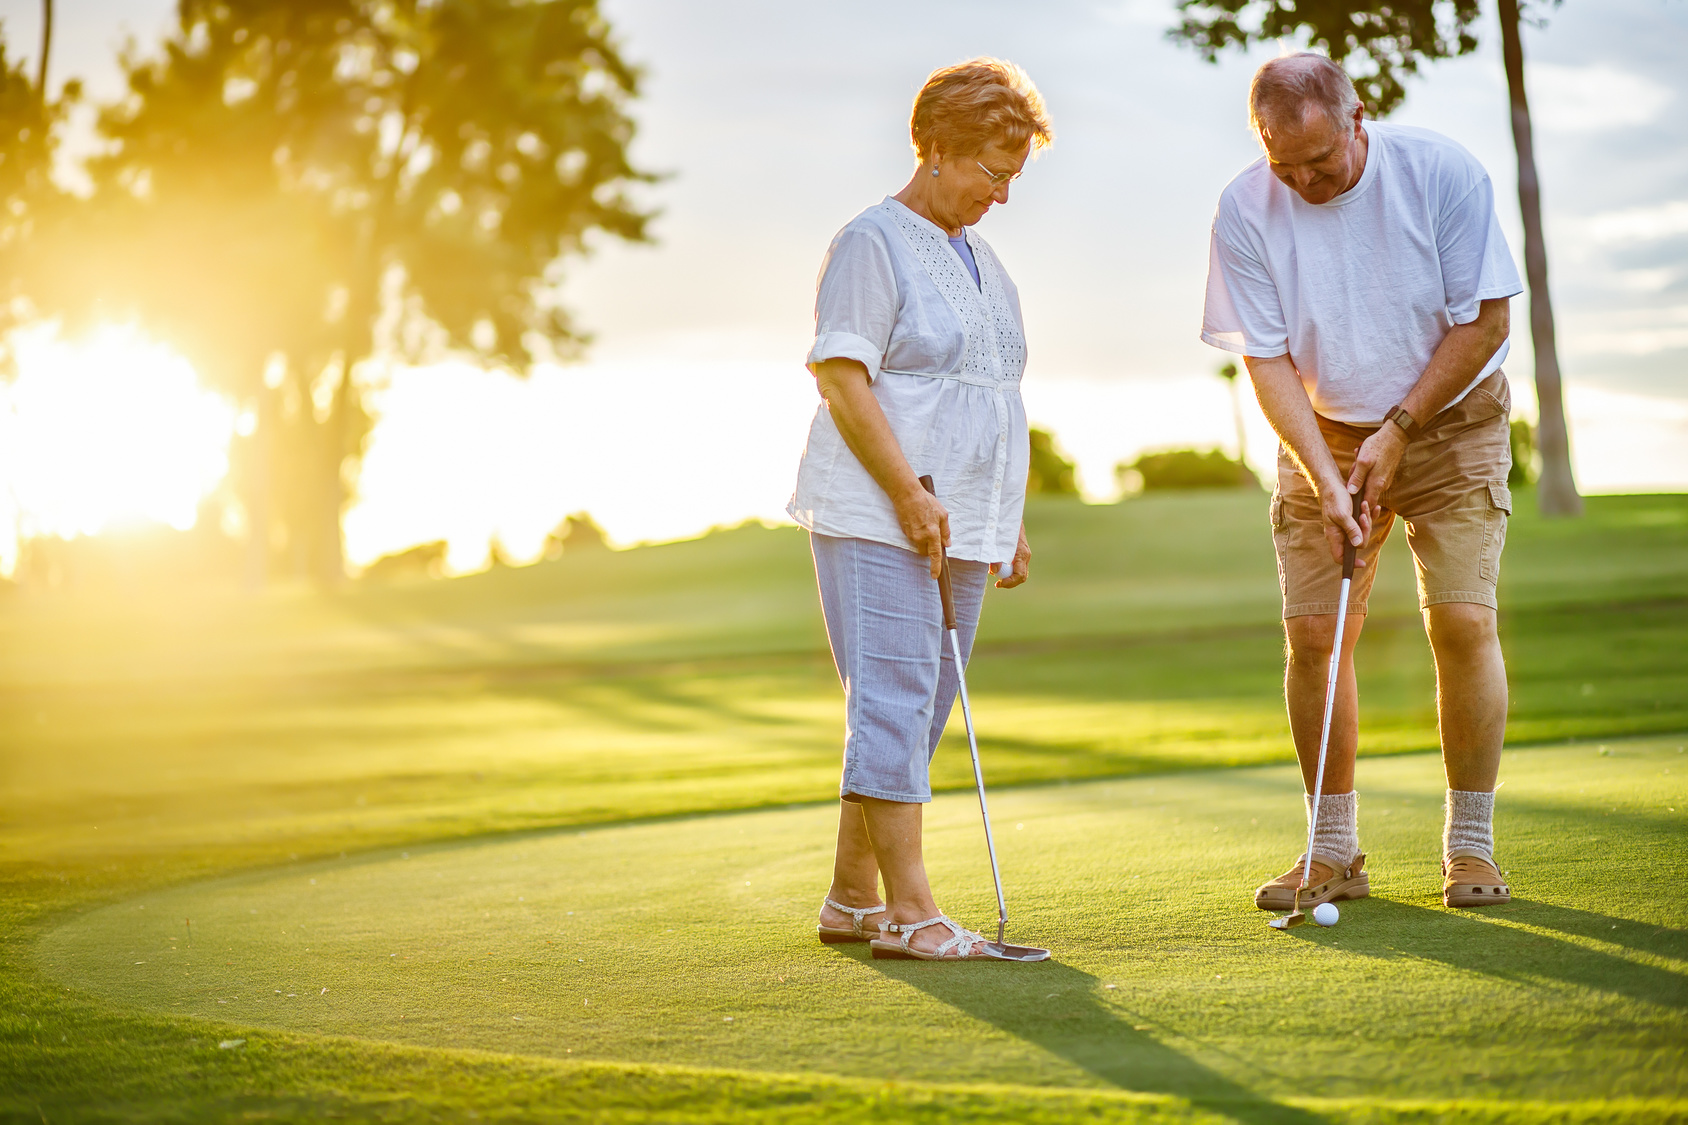 Senior Golf Tips